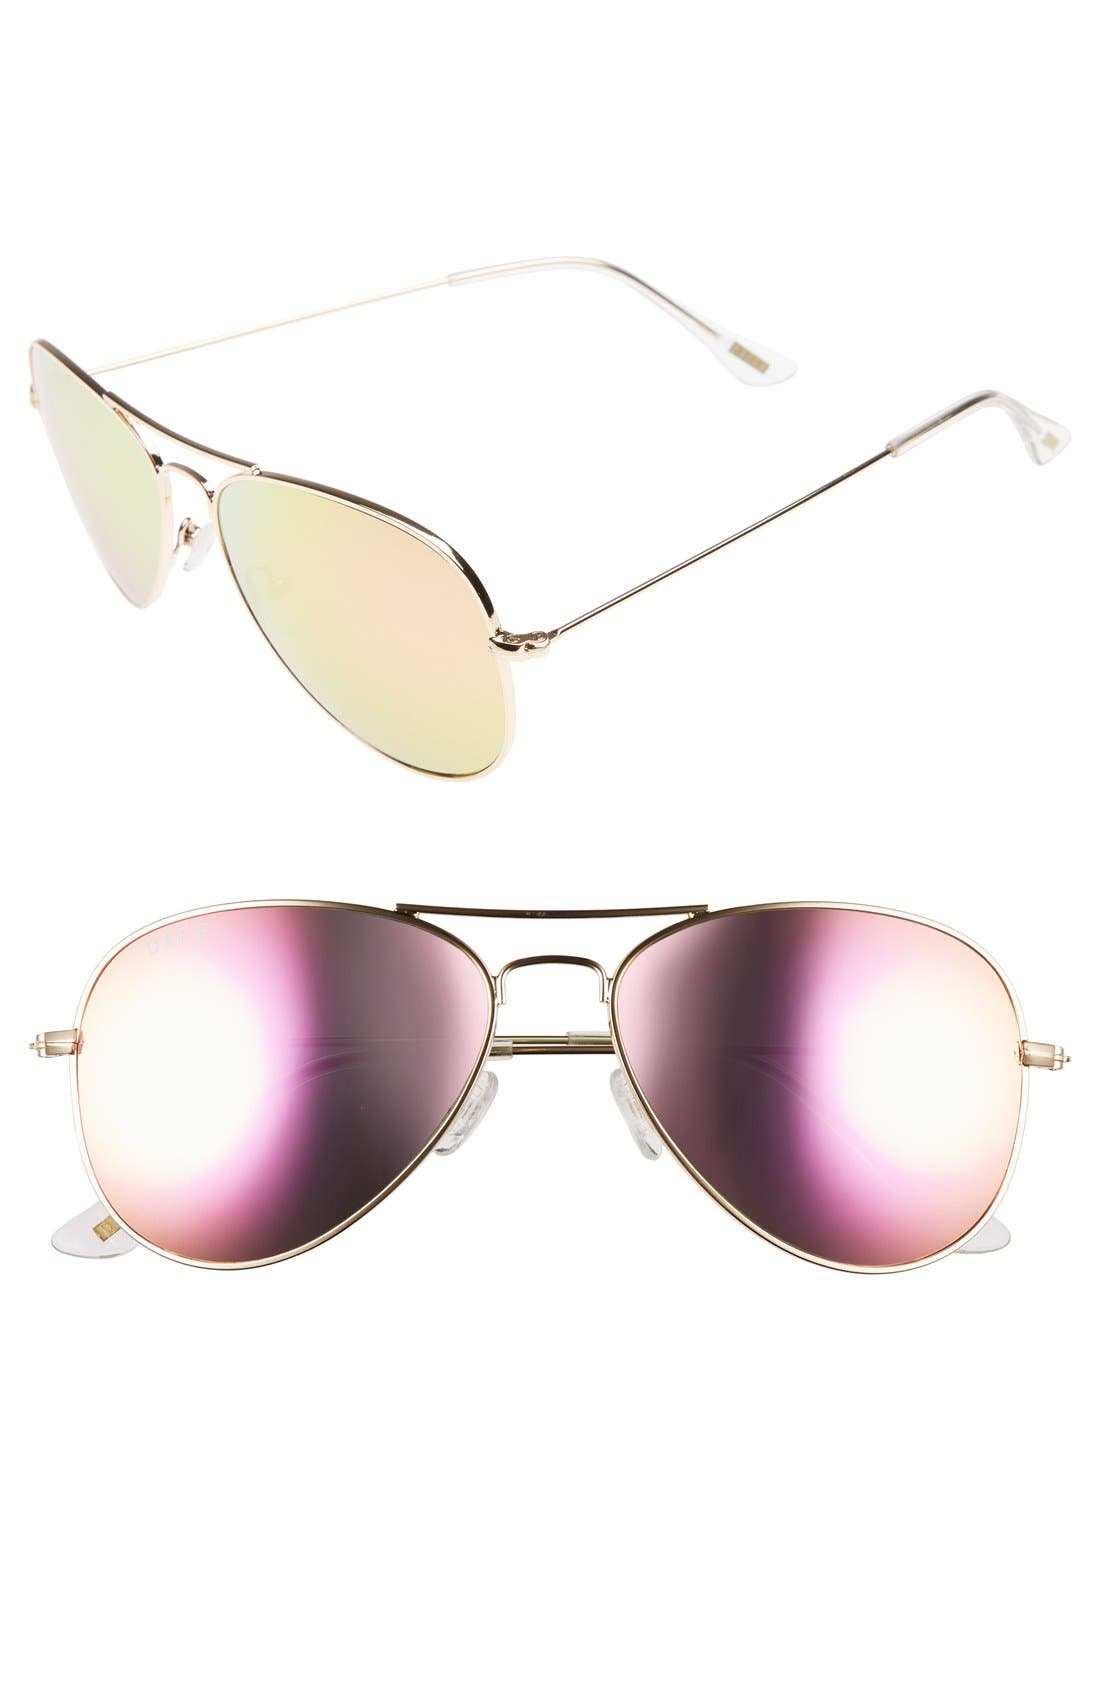 Alternate Image 1 Selected - DIFF Cruz 57mm Metal Aviator Sunglasses